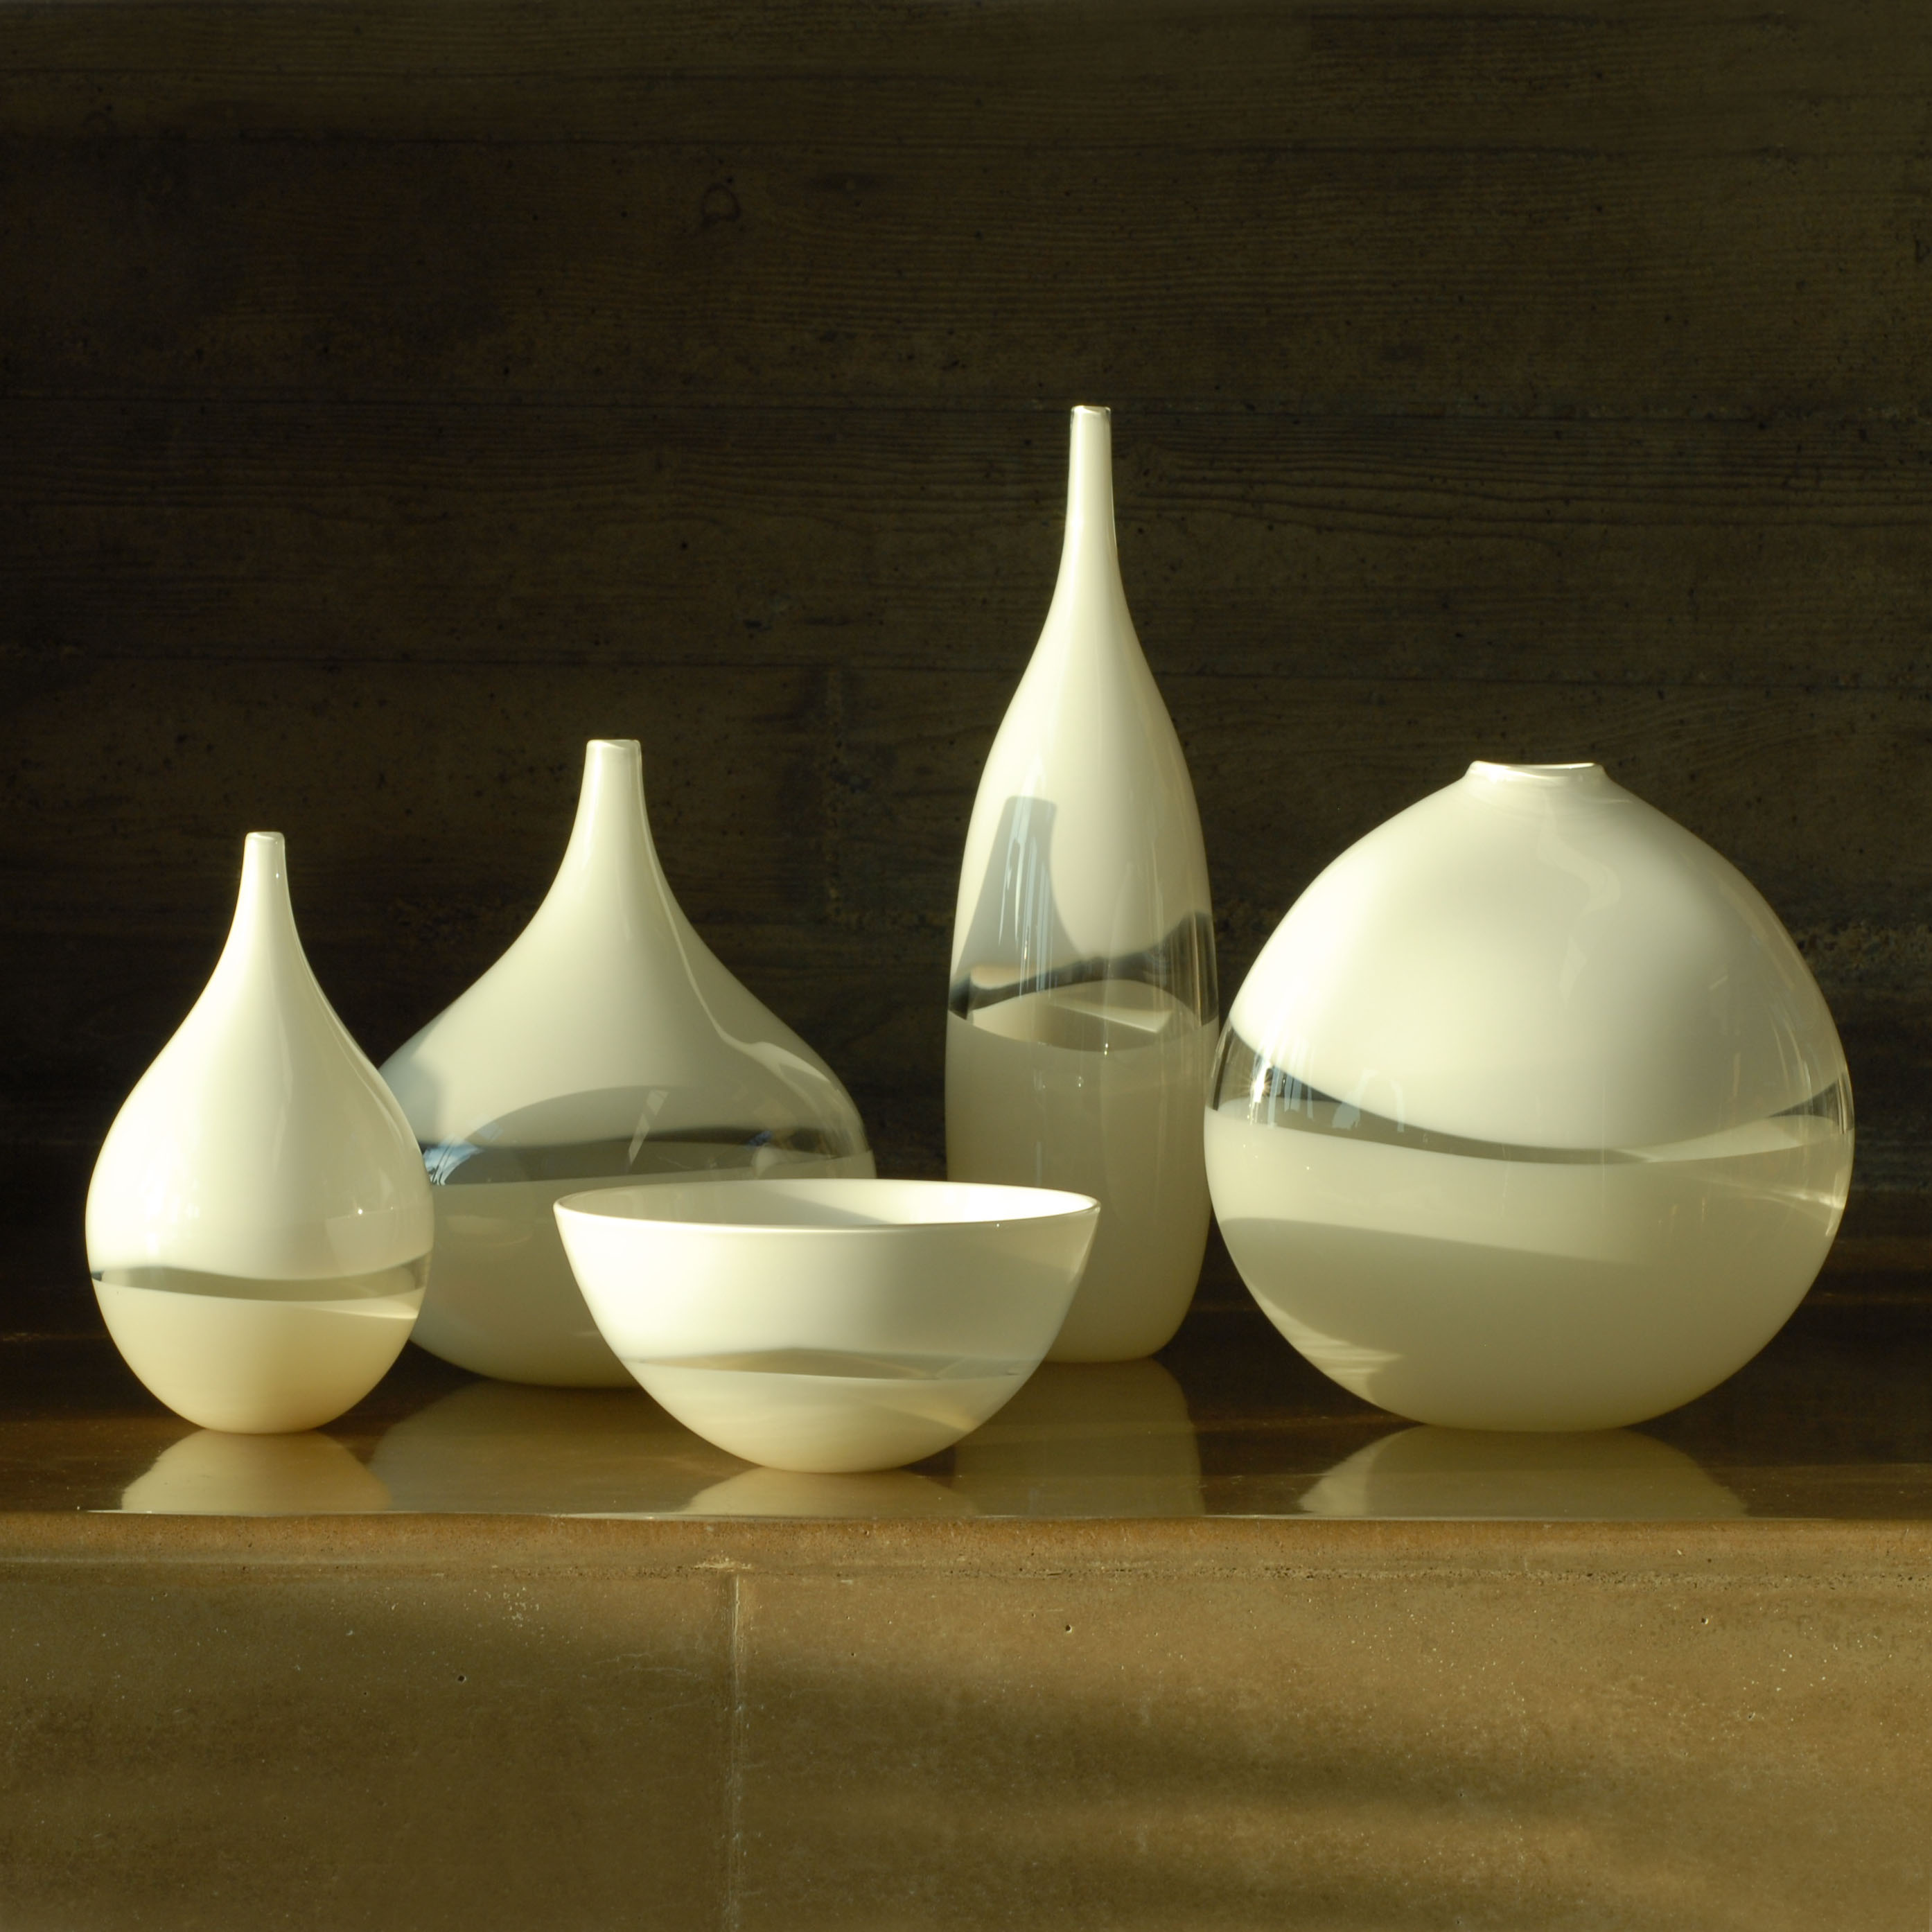 blown glass for decoration siemon and salazar by siemon and salazar